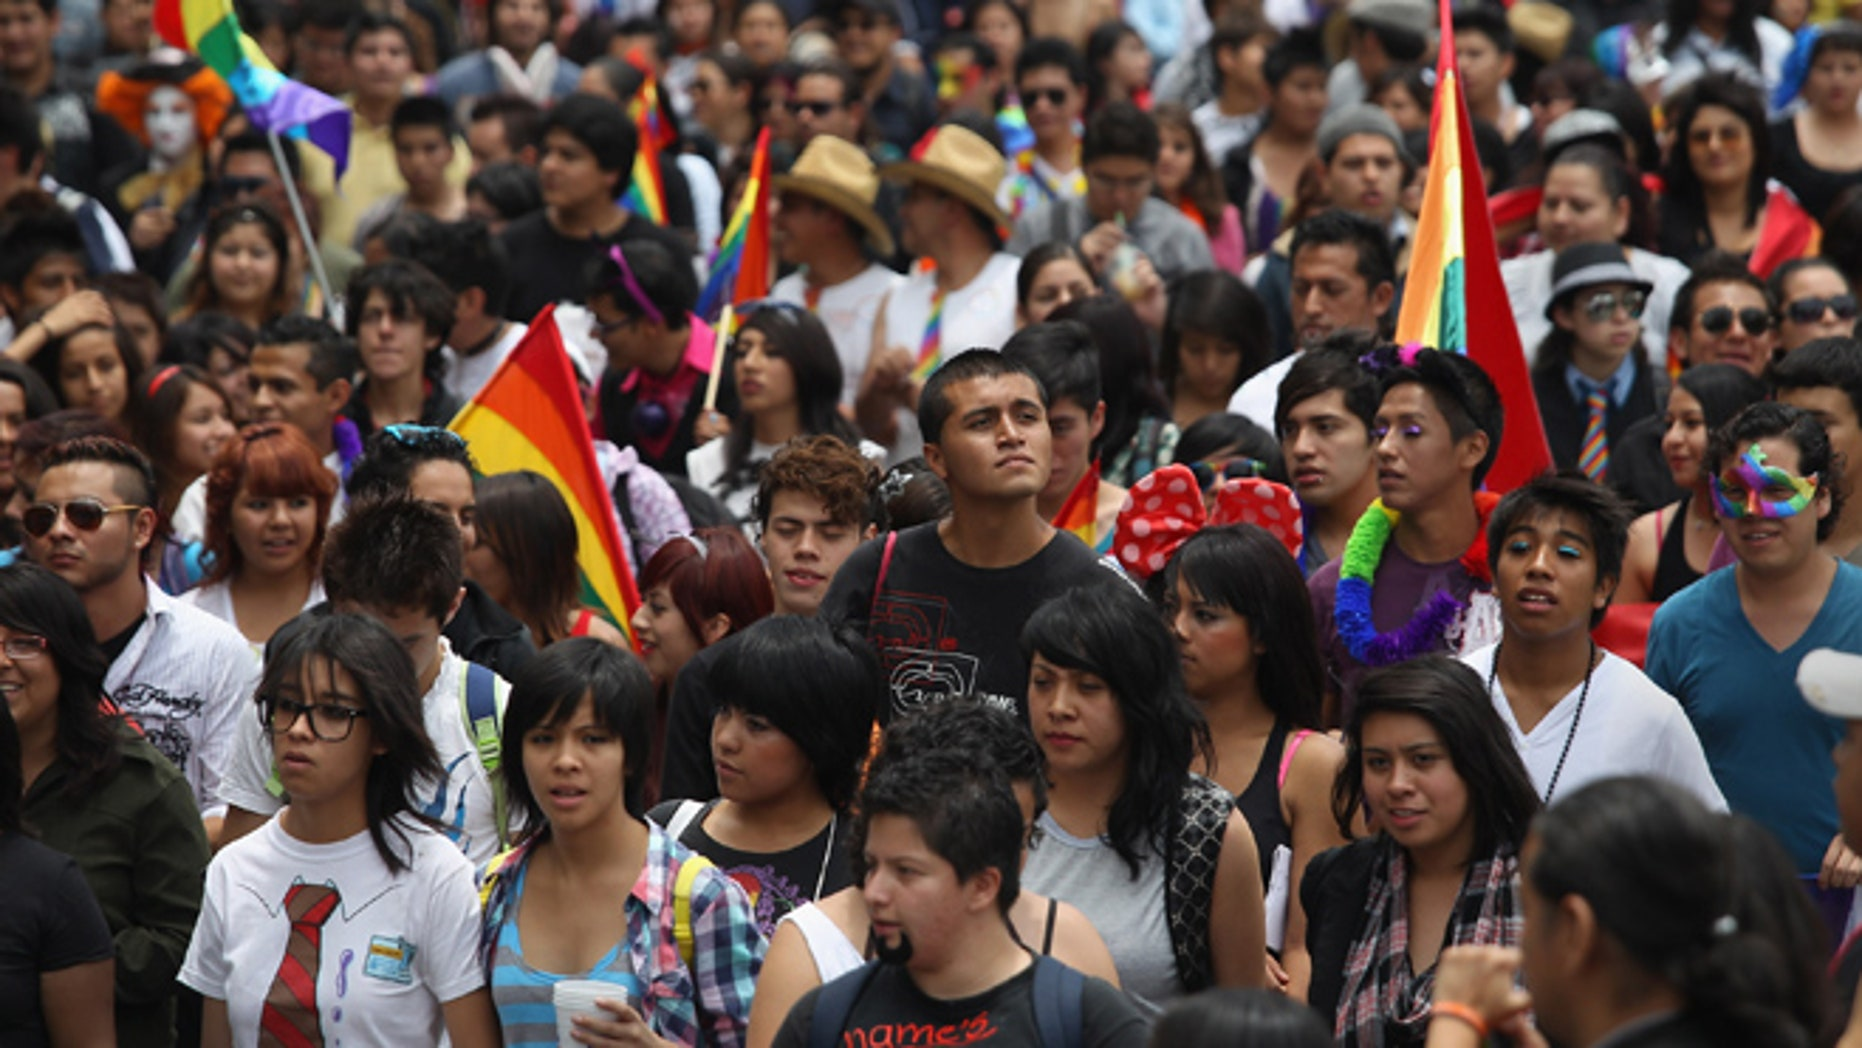 MEXICO CITY, MEXICO - JUNE 30:  Thousands of people fill Mexico City's Paseo de la Reforma during a gay pride march on June 30, 2012 in Mexico City, Mexico. Mexicans go the polls Sunday for presidential elections.  (Photo by John Moore/Getty Images)